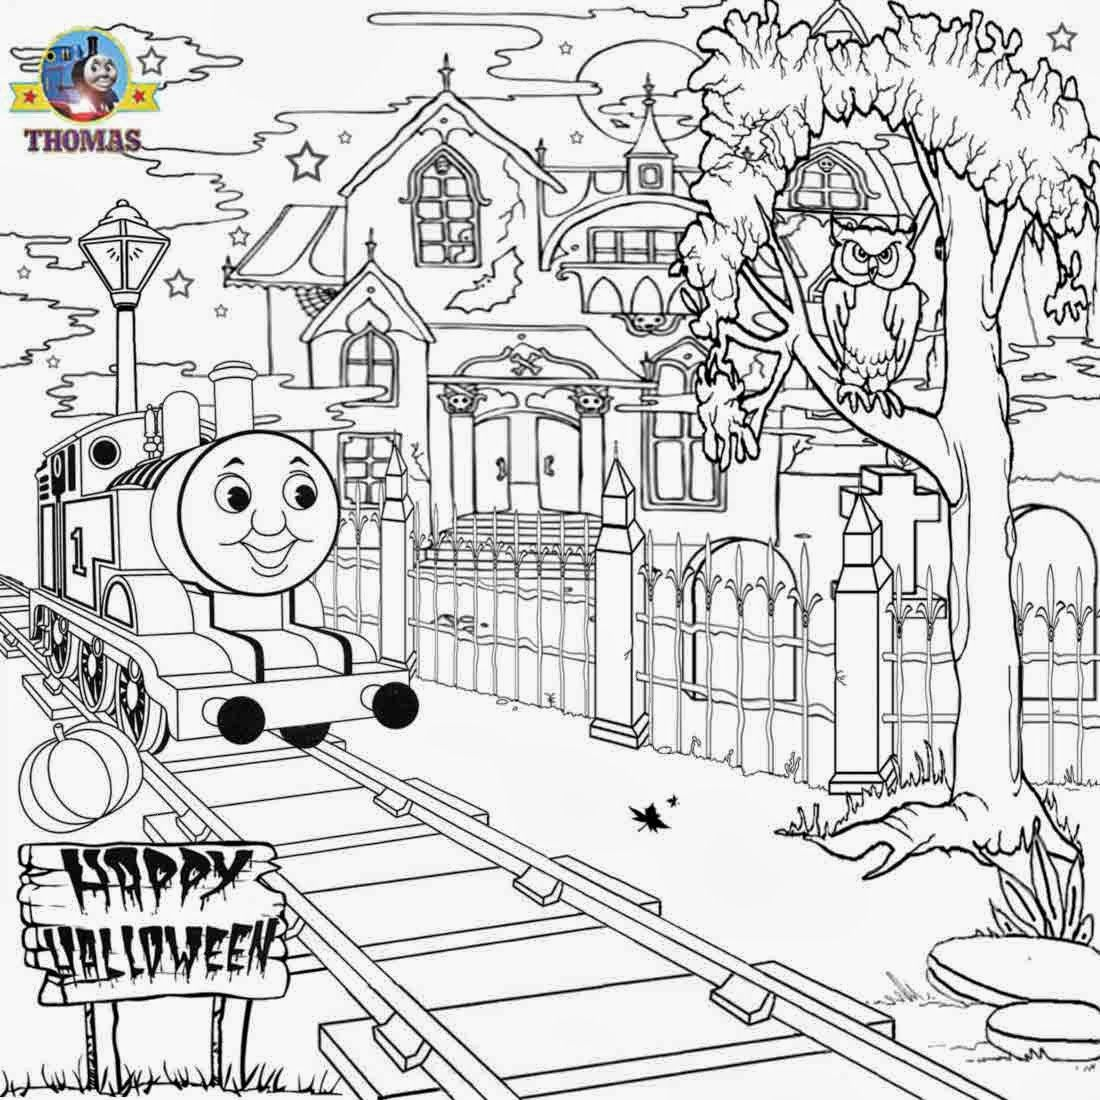 Thomas the train halloween coloring - Thomas The Train Halloween Worksheets For Kids House Thomas N Friend Coloring Pictures To Color